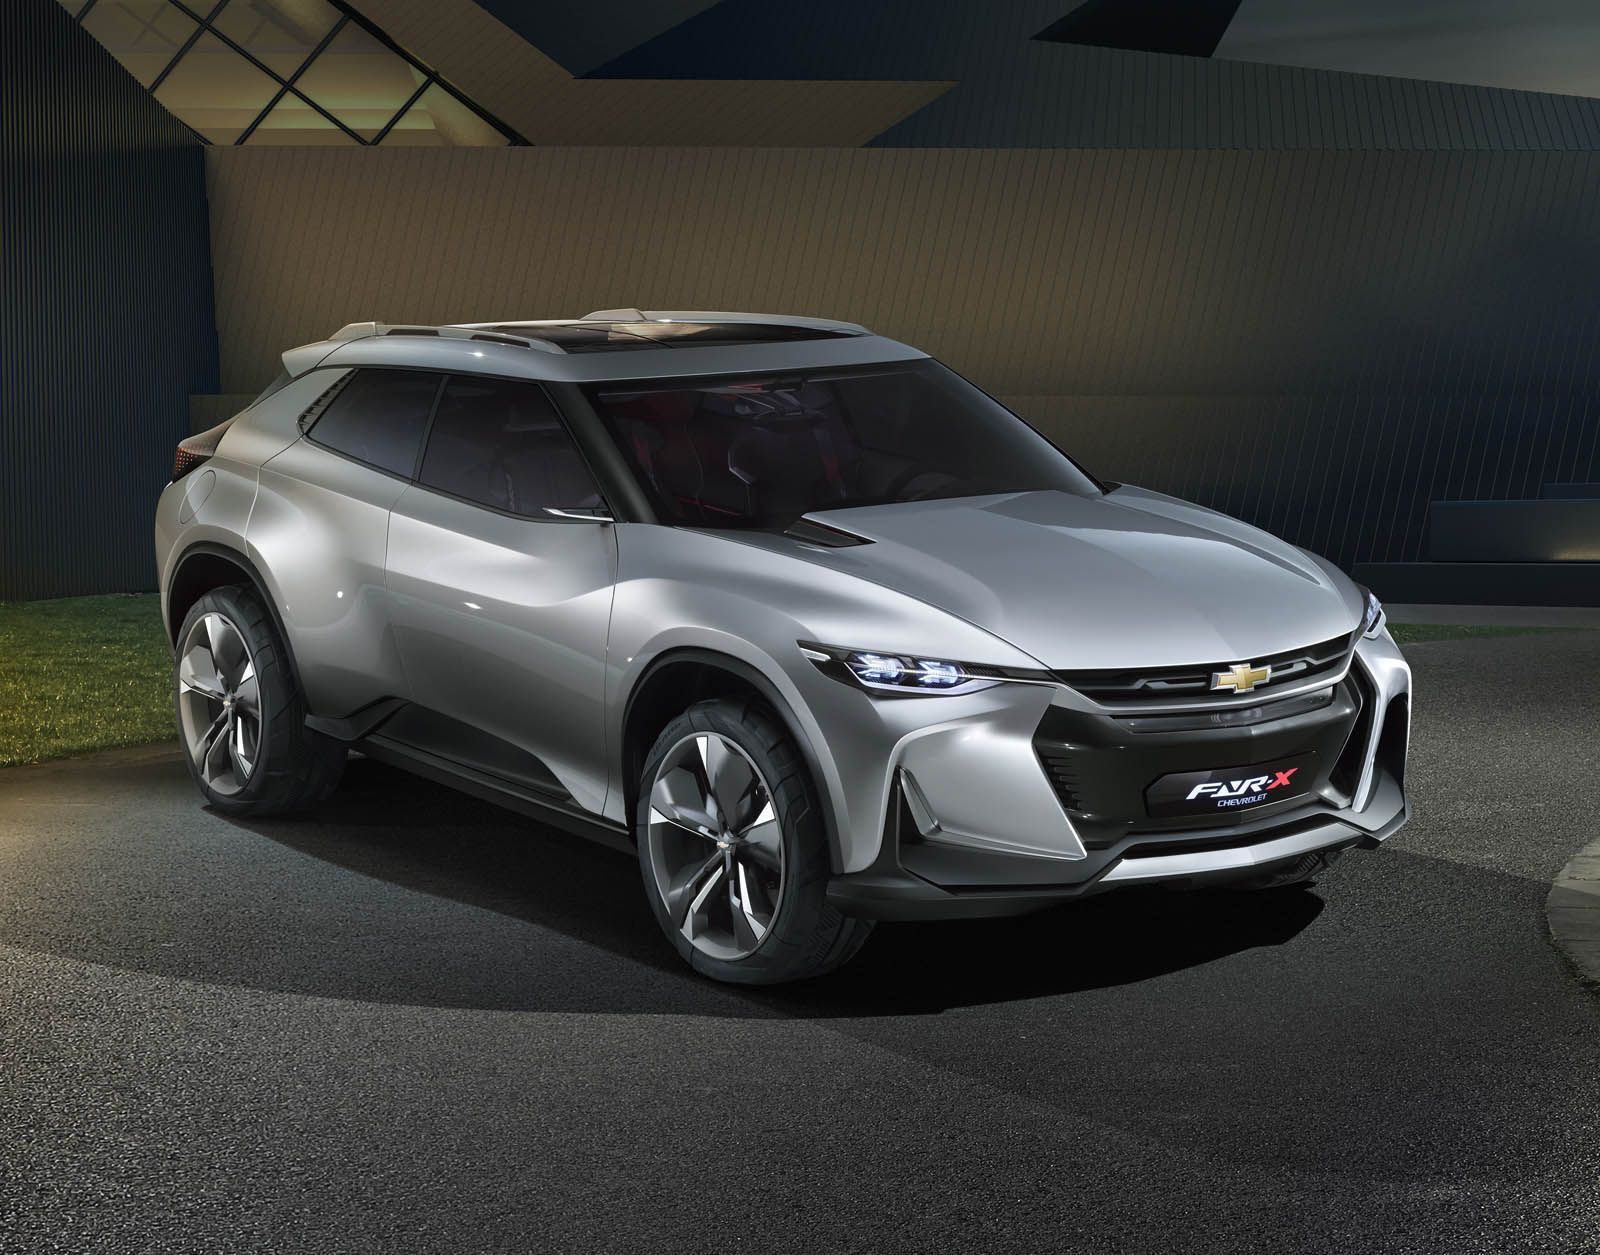 Chevrolet fnr x concept 2017 car rear view 4k wallpaper cars wallpapers pinterest rear view chevrolet and cars